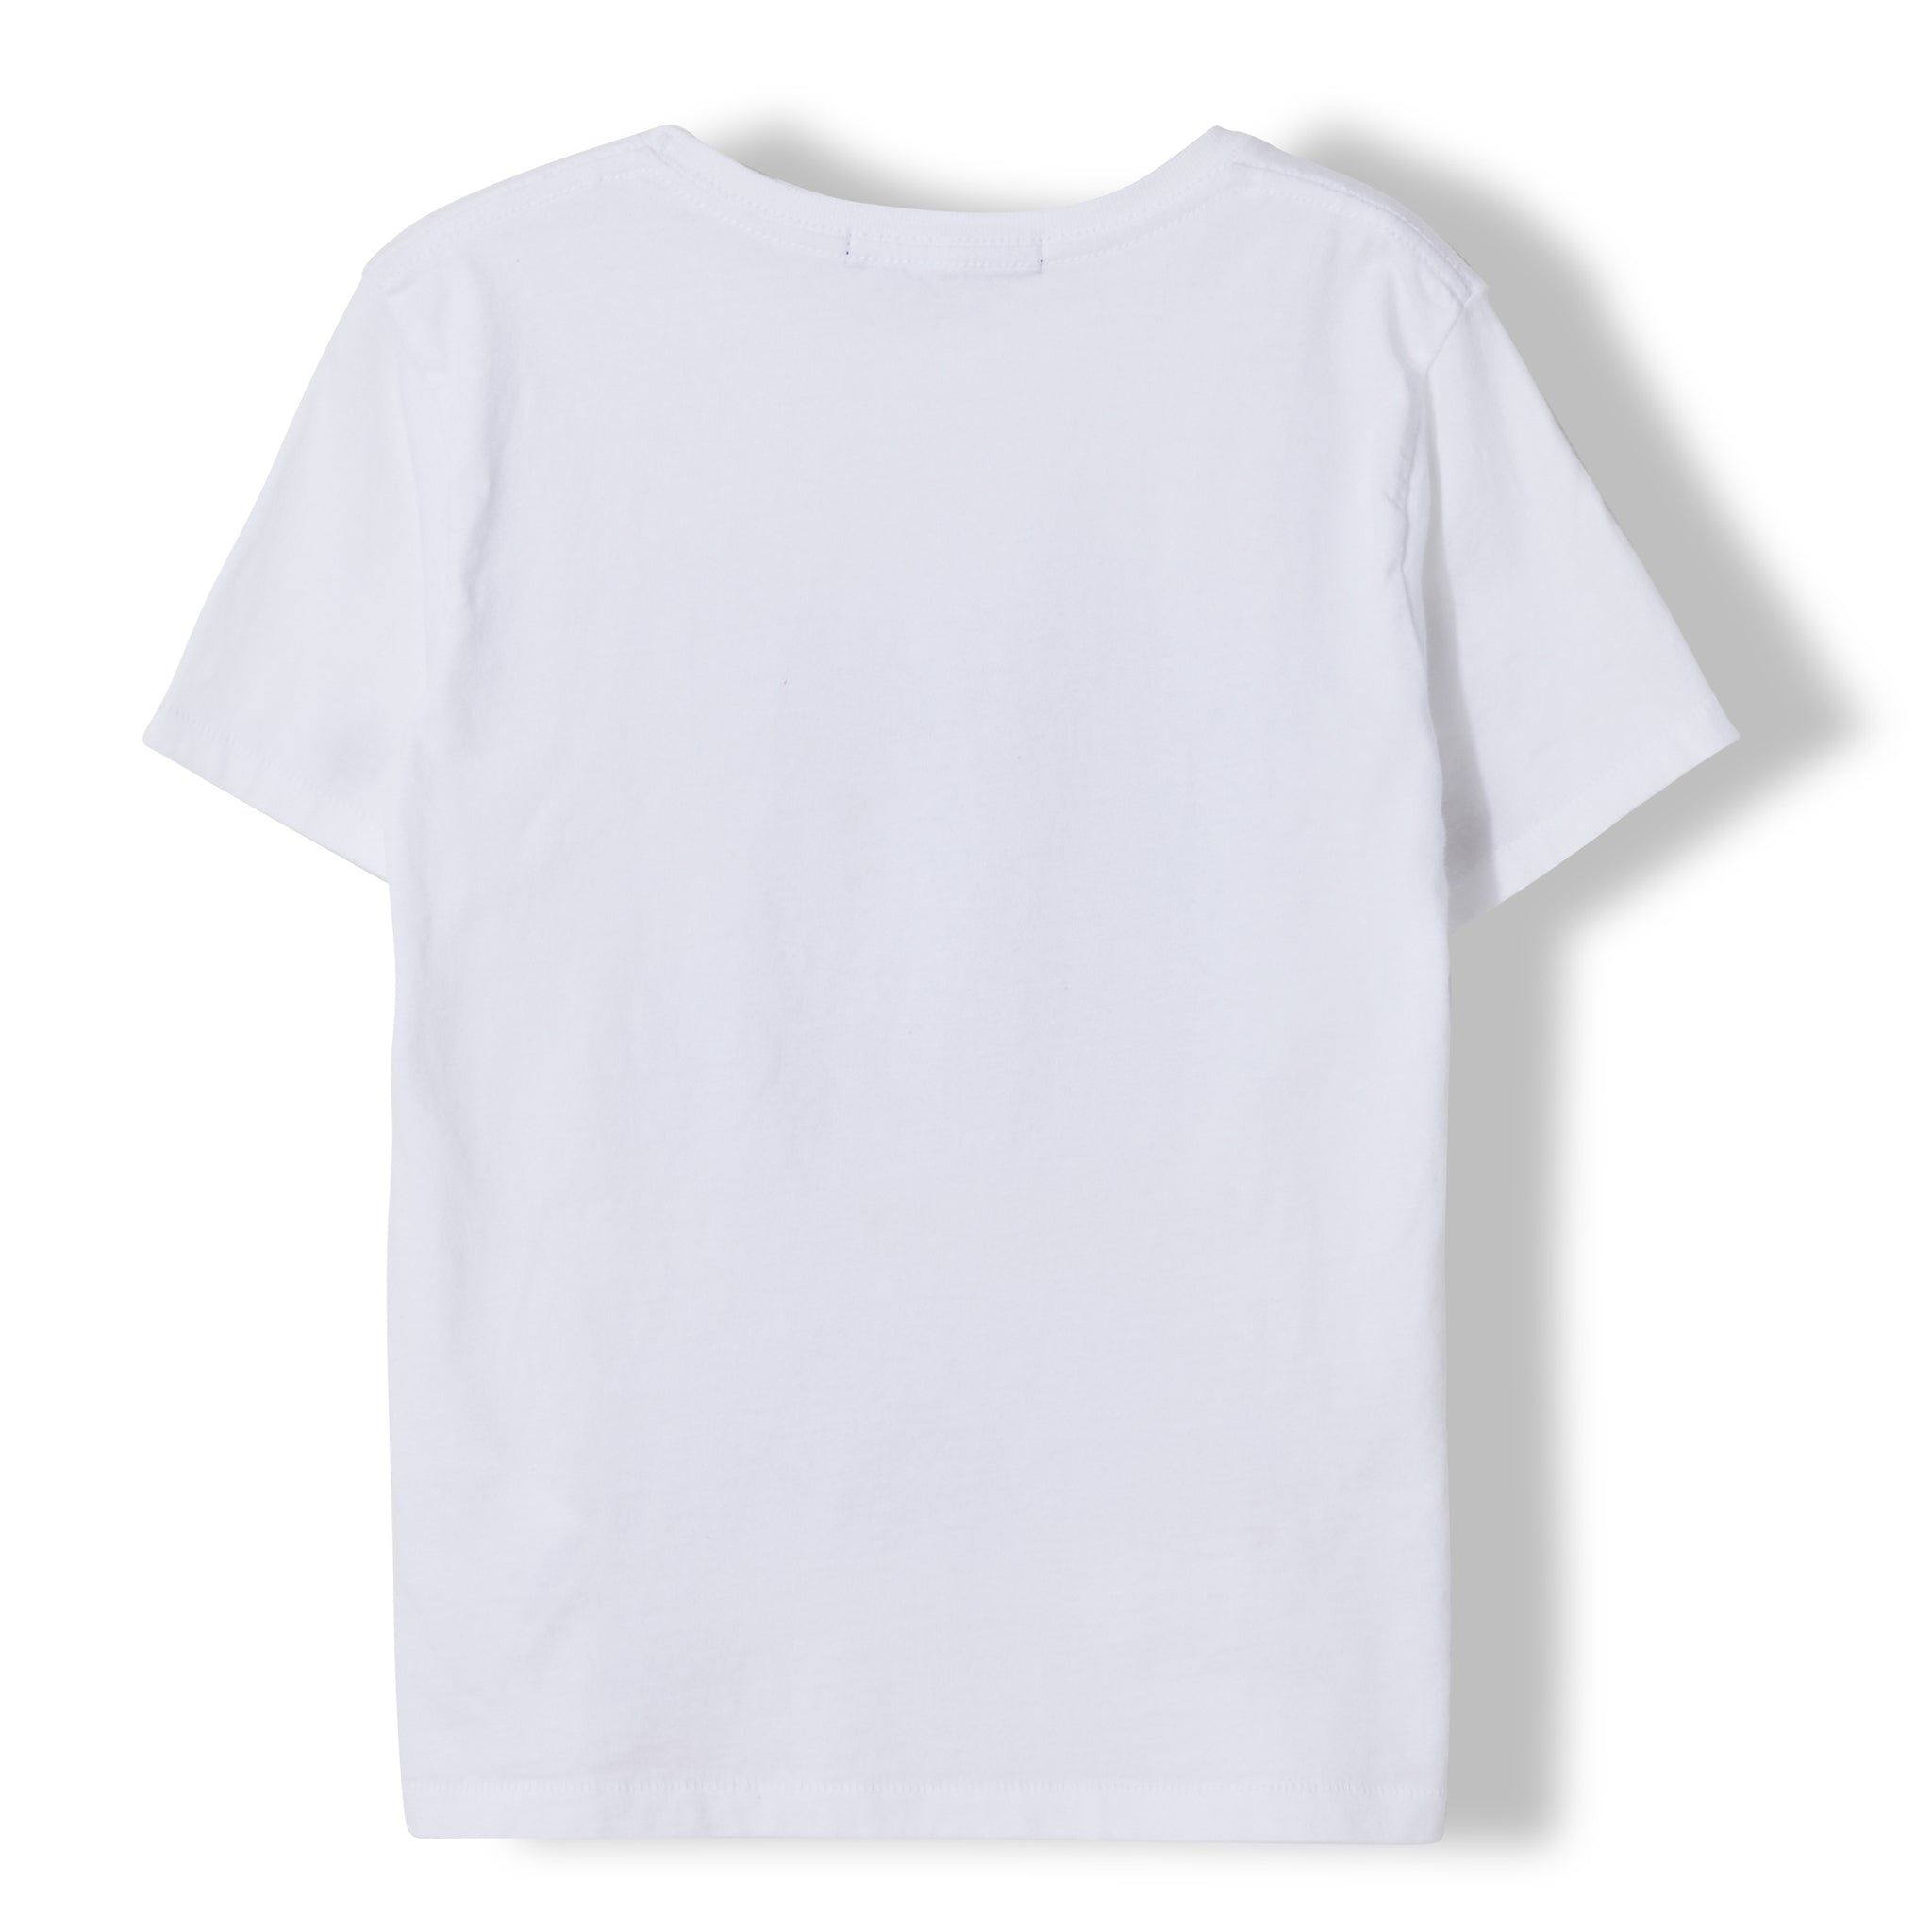 DALTON White Summer Skate - Boy Knitted Jersey Short Sleeve T-Shirt 3